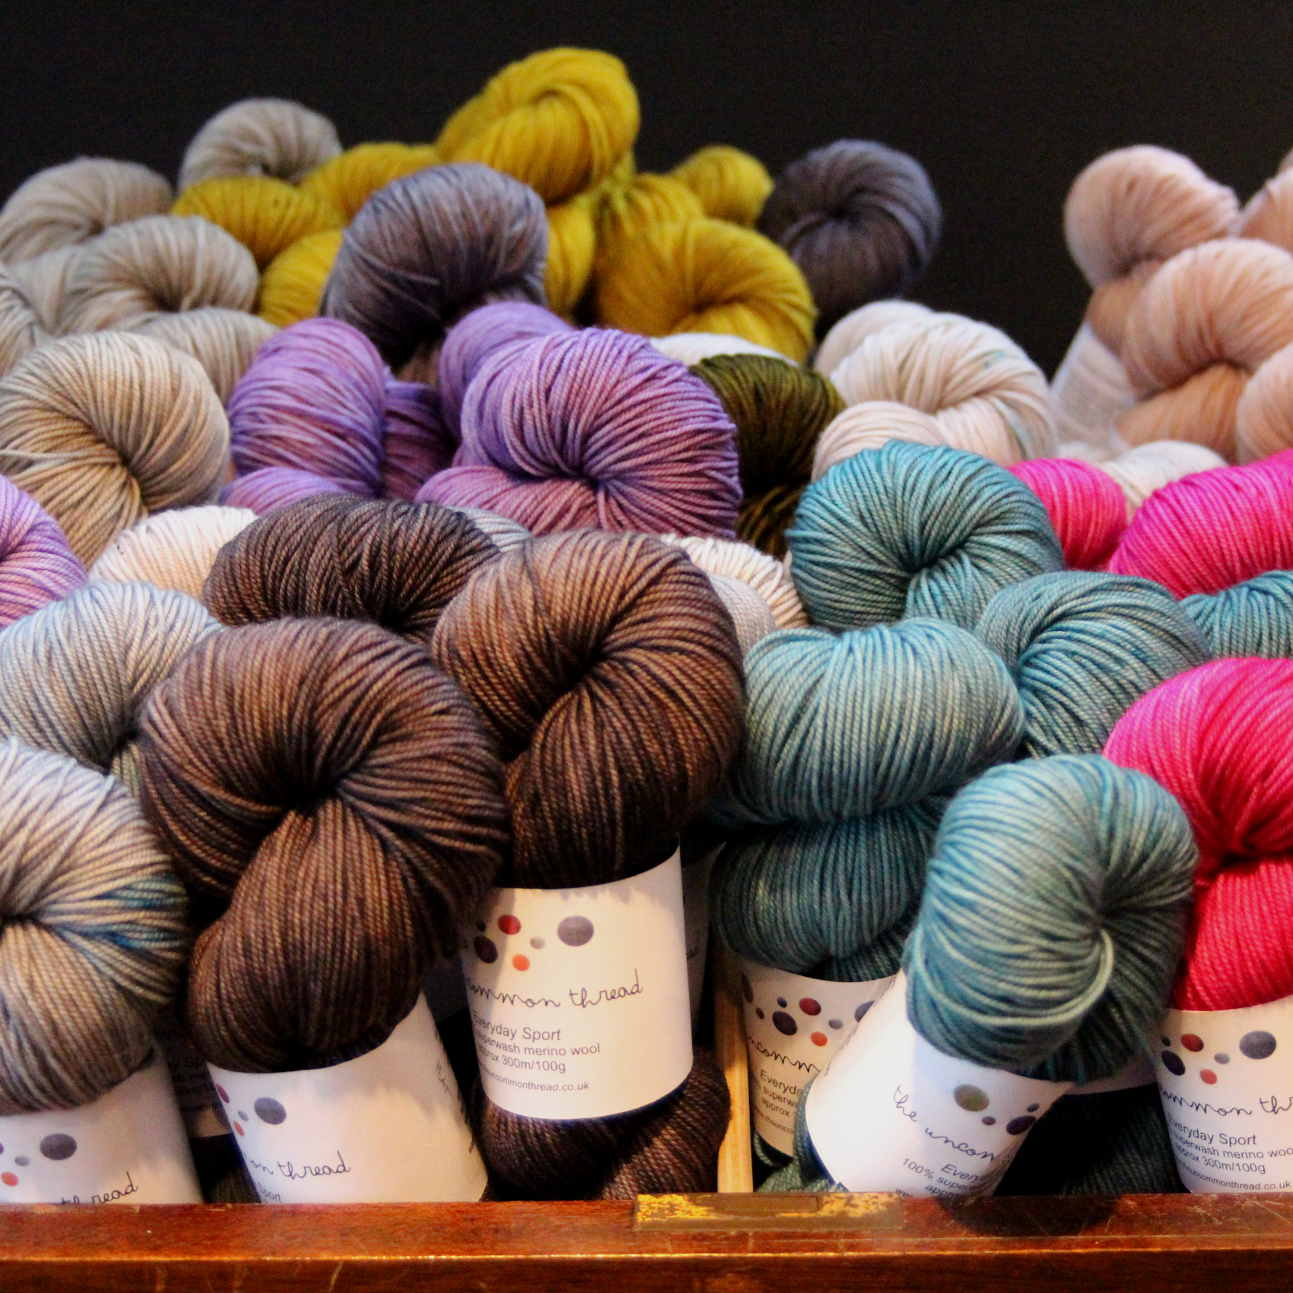 Every day Sport, Merino, Superwash, Hand dyed yarn